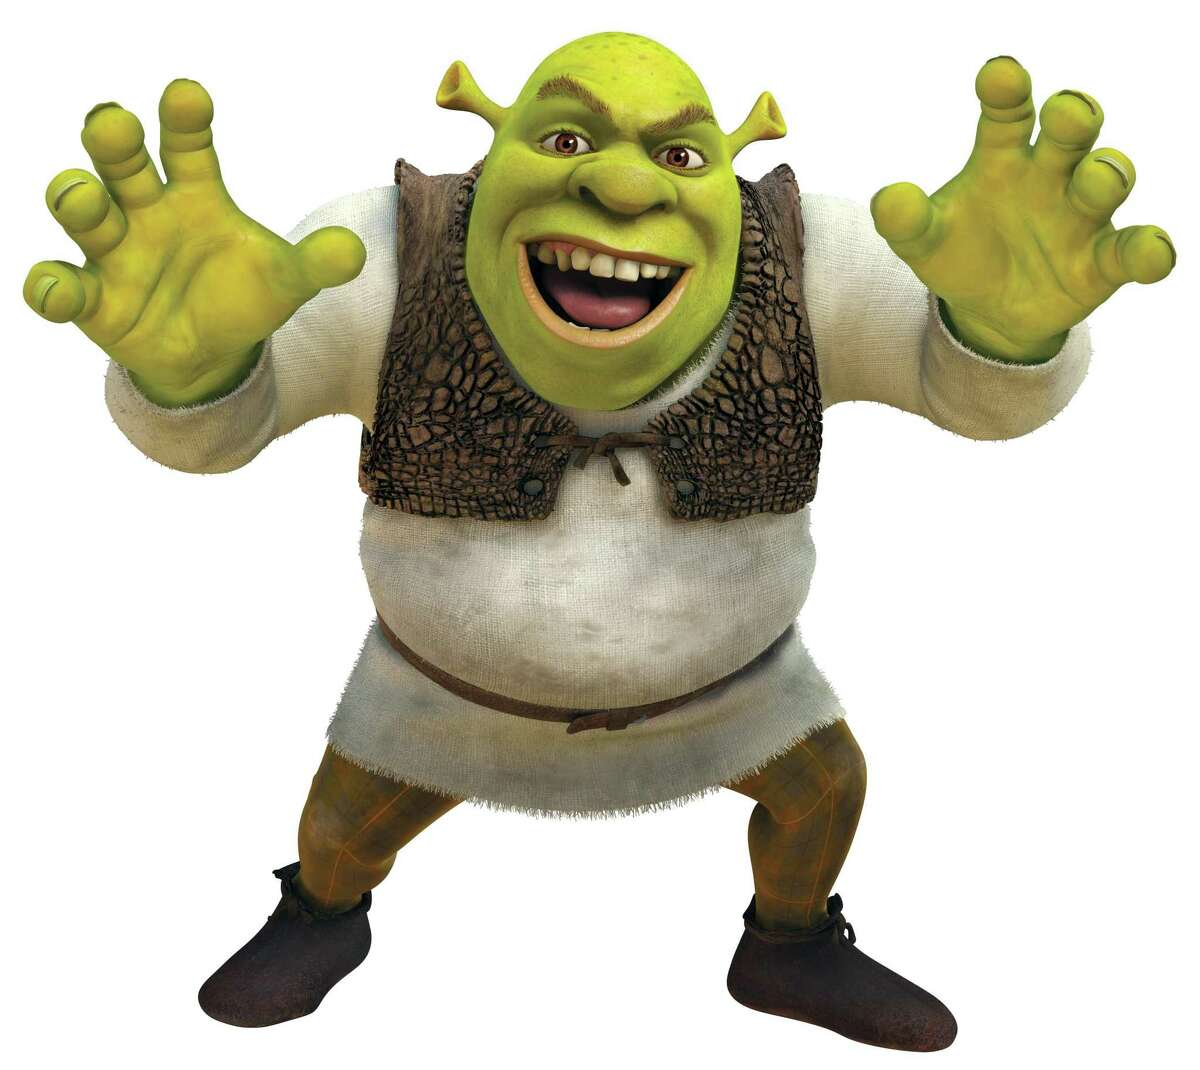 """In an early celebration of Halloween, the Cynthia Woods Mitchell Pavilion is hosting a """"Shrek-tacular' movie event on Oct. 16."""